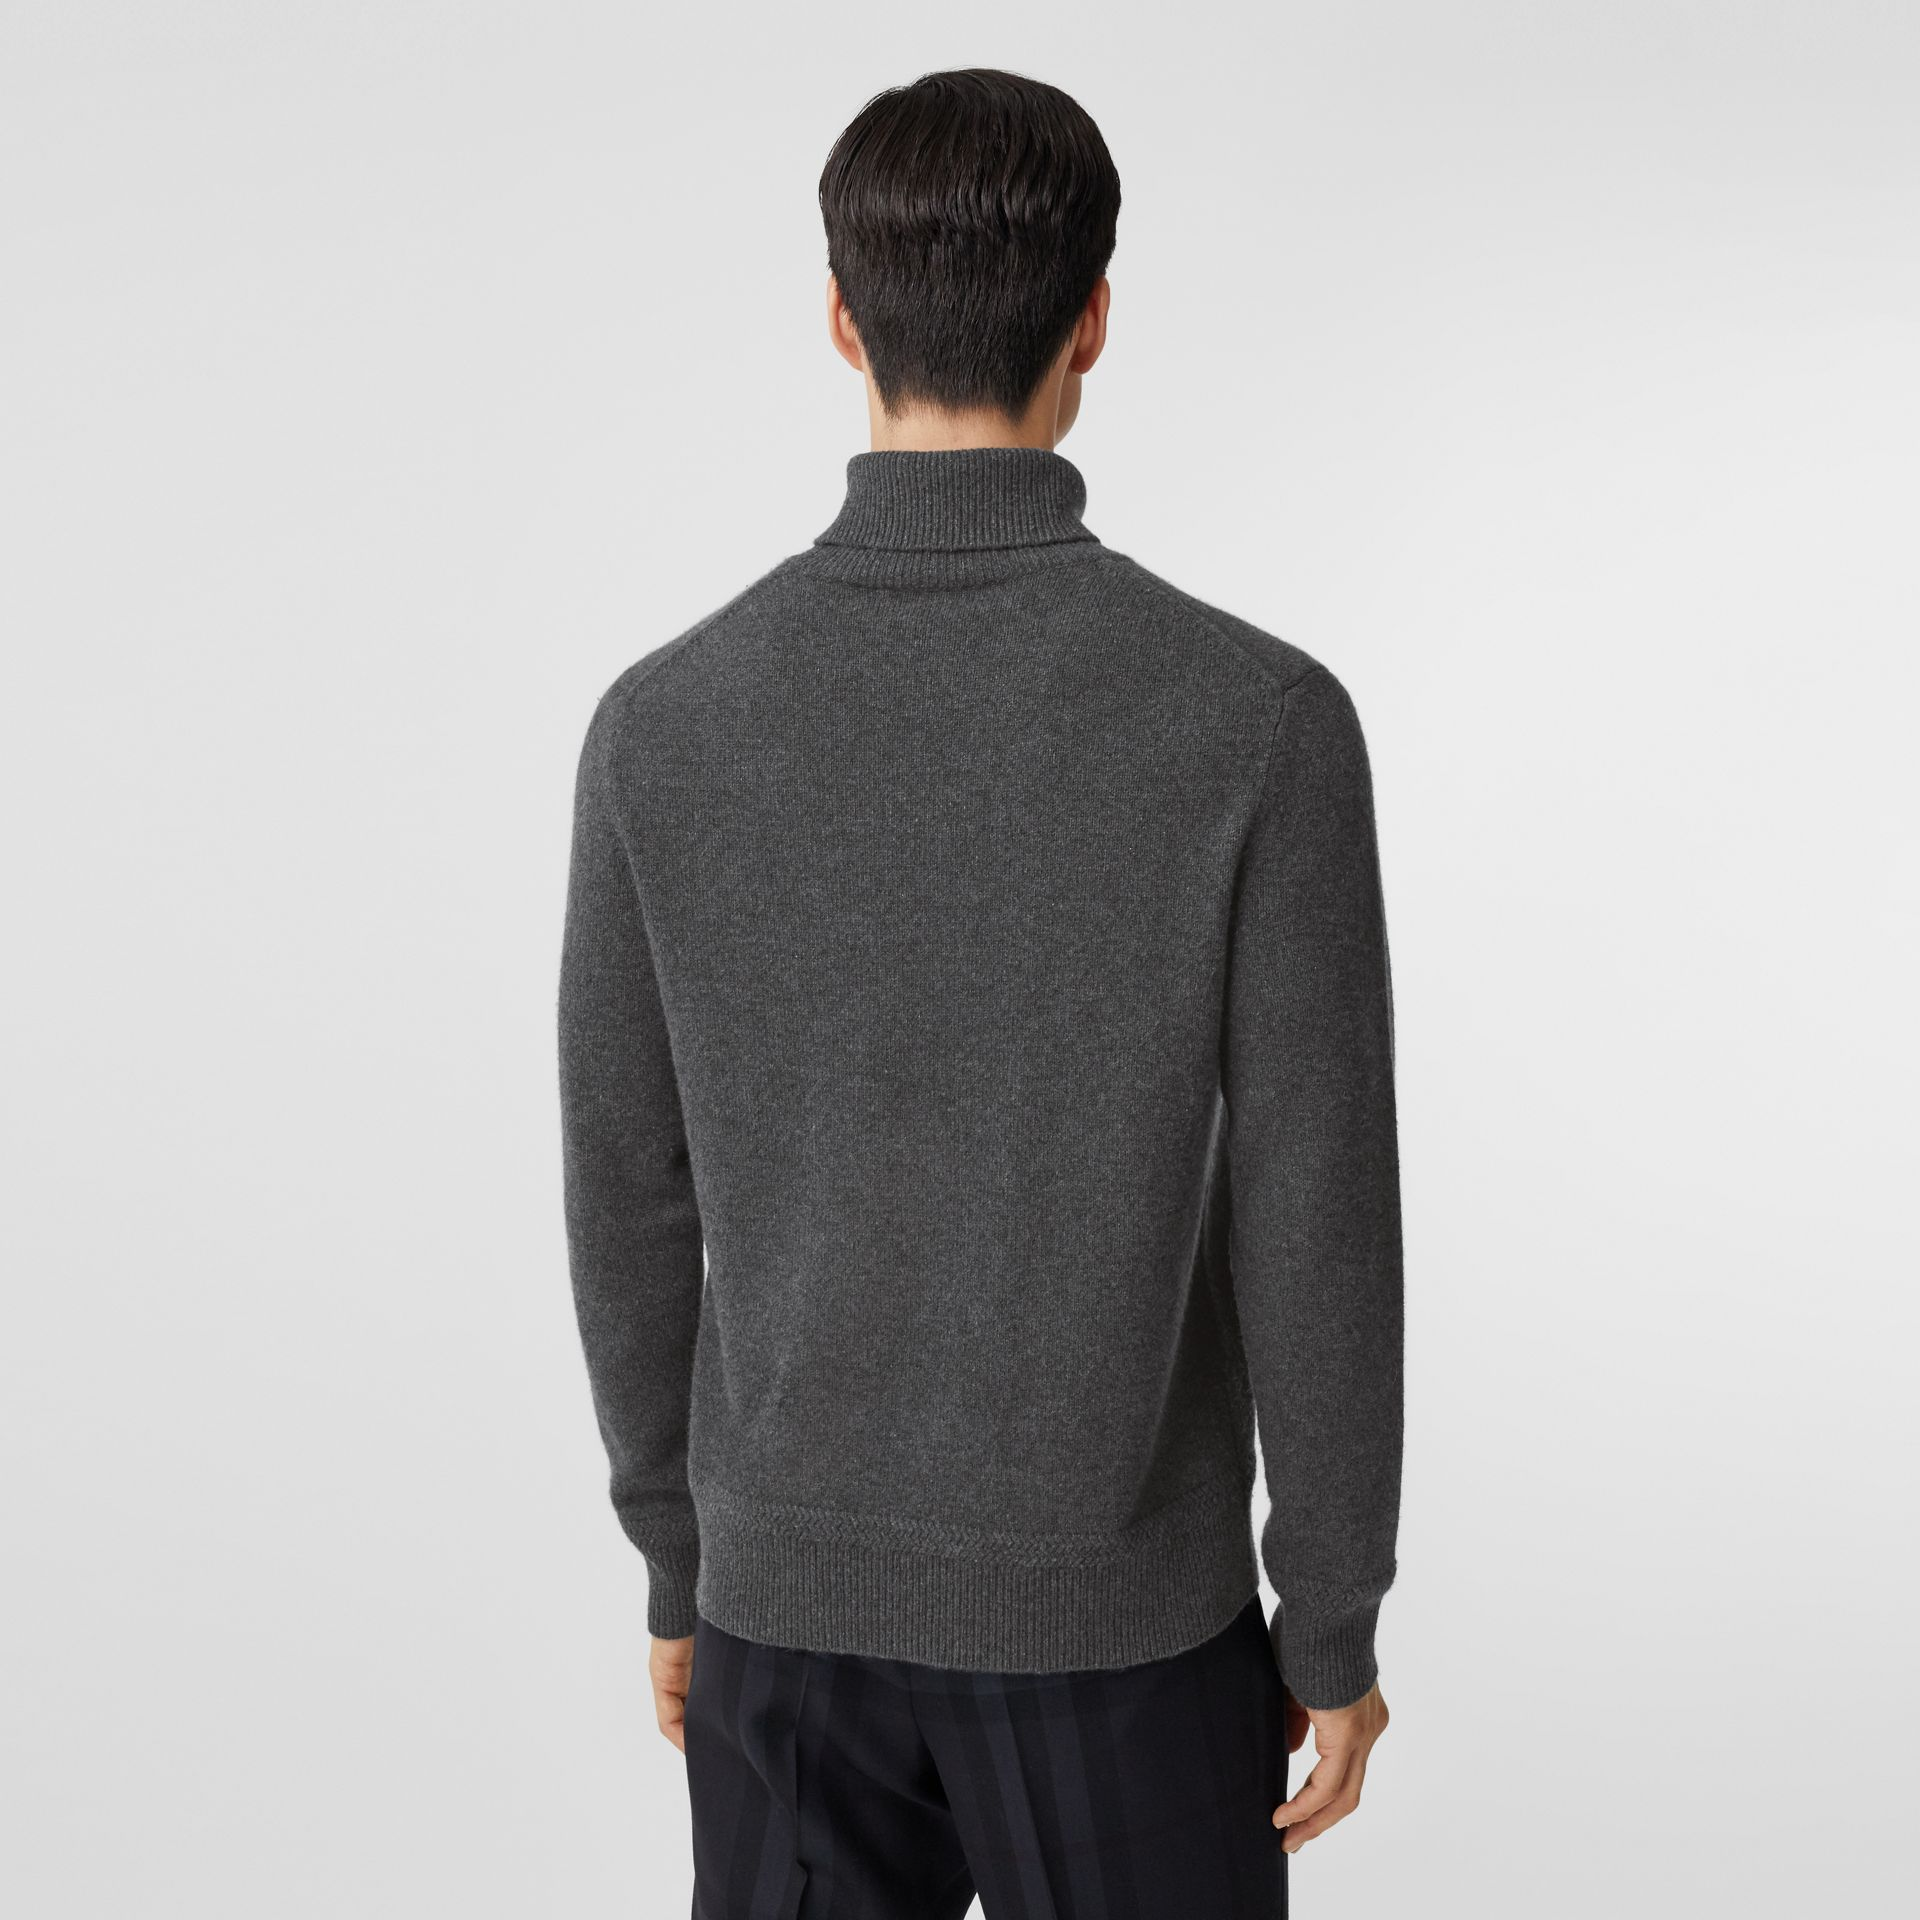 Monogram Motif Cashmere Roll-neck Sweater in Charcoal - Men | Burberry - gallery image 2